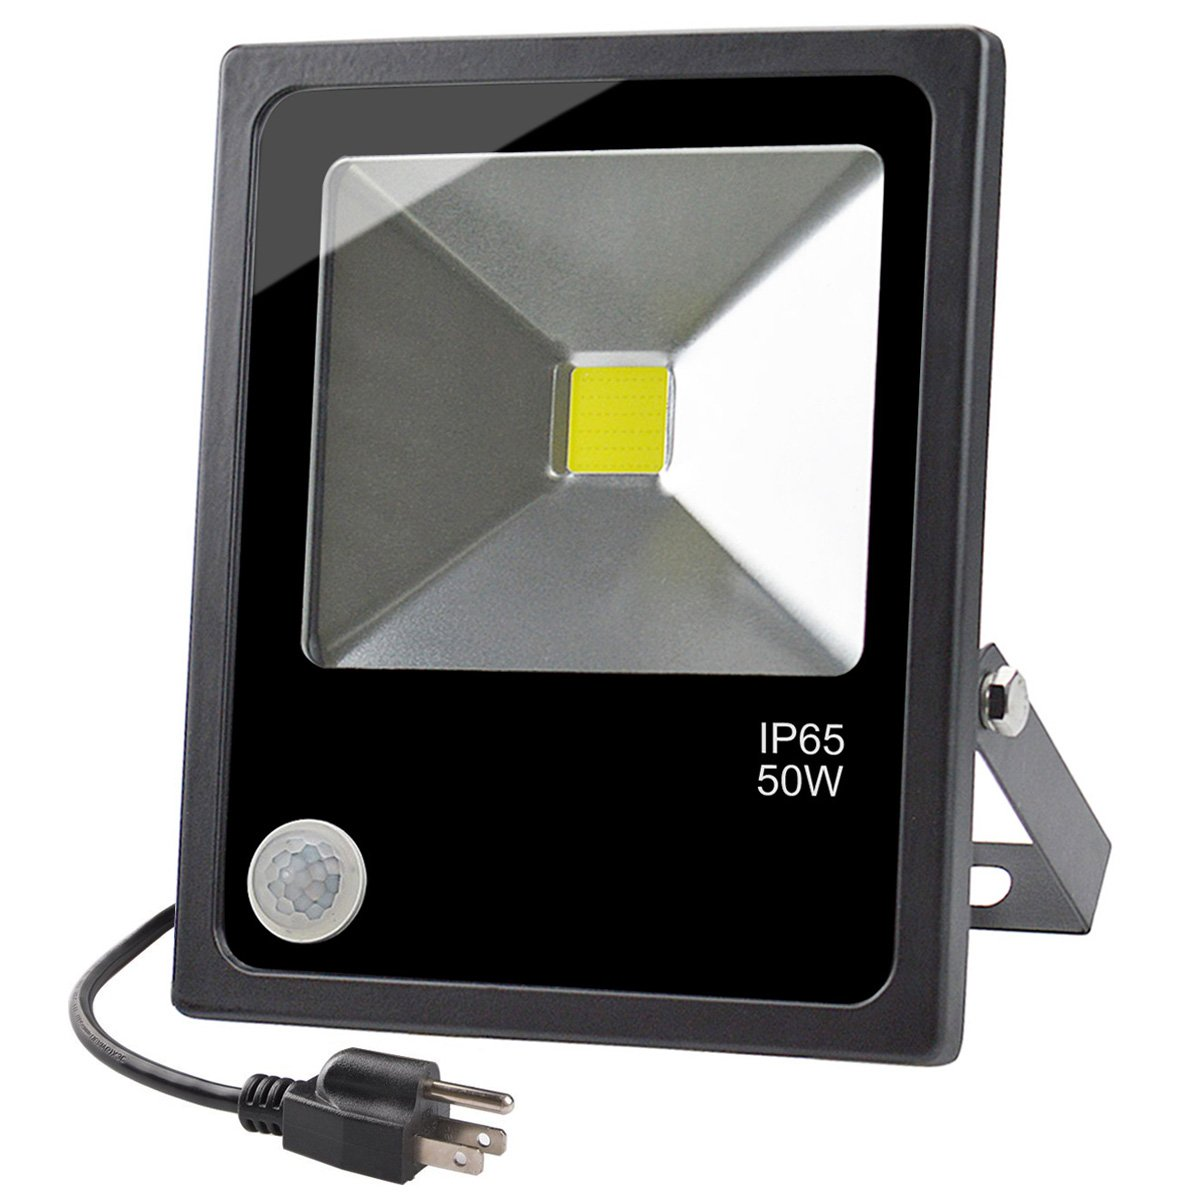 Motion Sensor LED Outdoor Security Flood Light,50W Daylight White IP65 Waterproof Lights,4500 Lumen,250W Hps Bulb Equivalent,for Parking Lots,Gardens,Warehouses by GLW